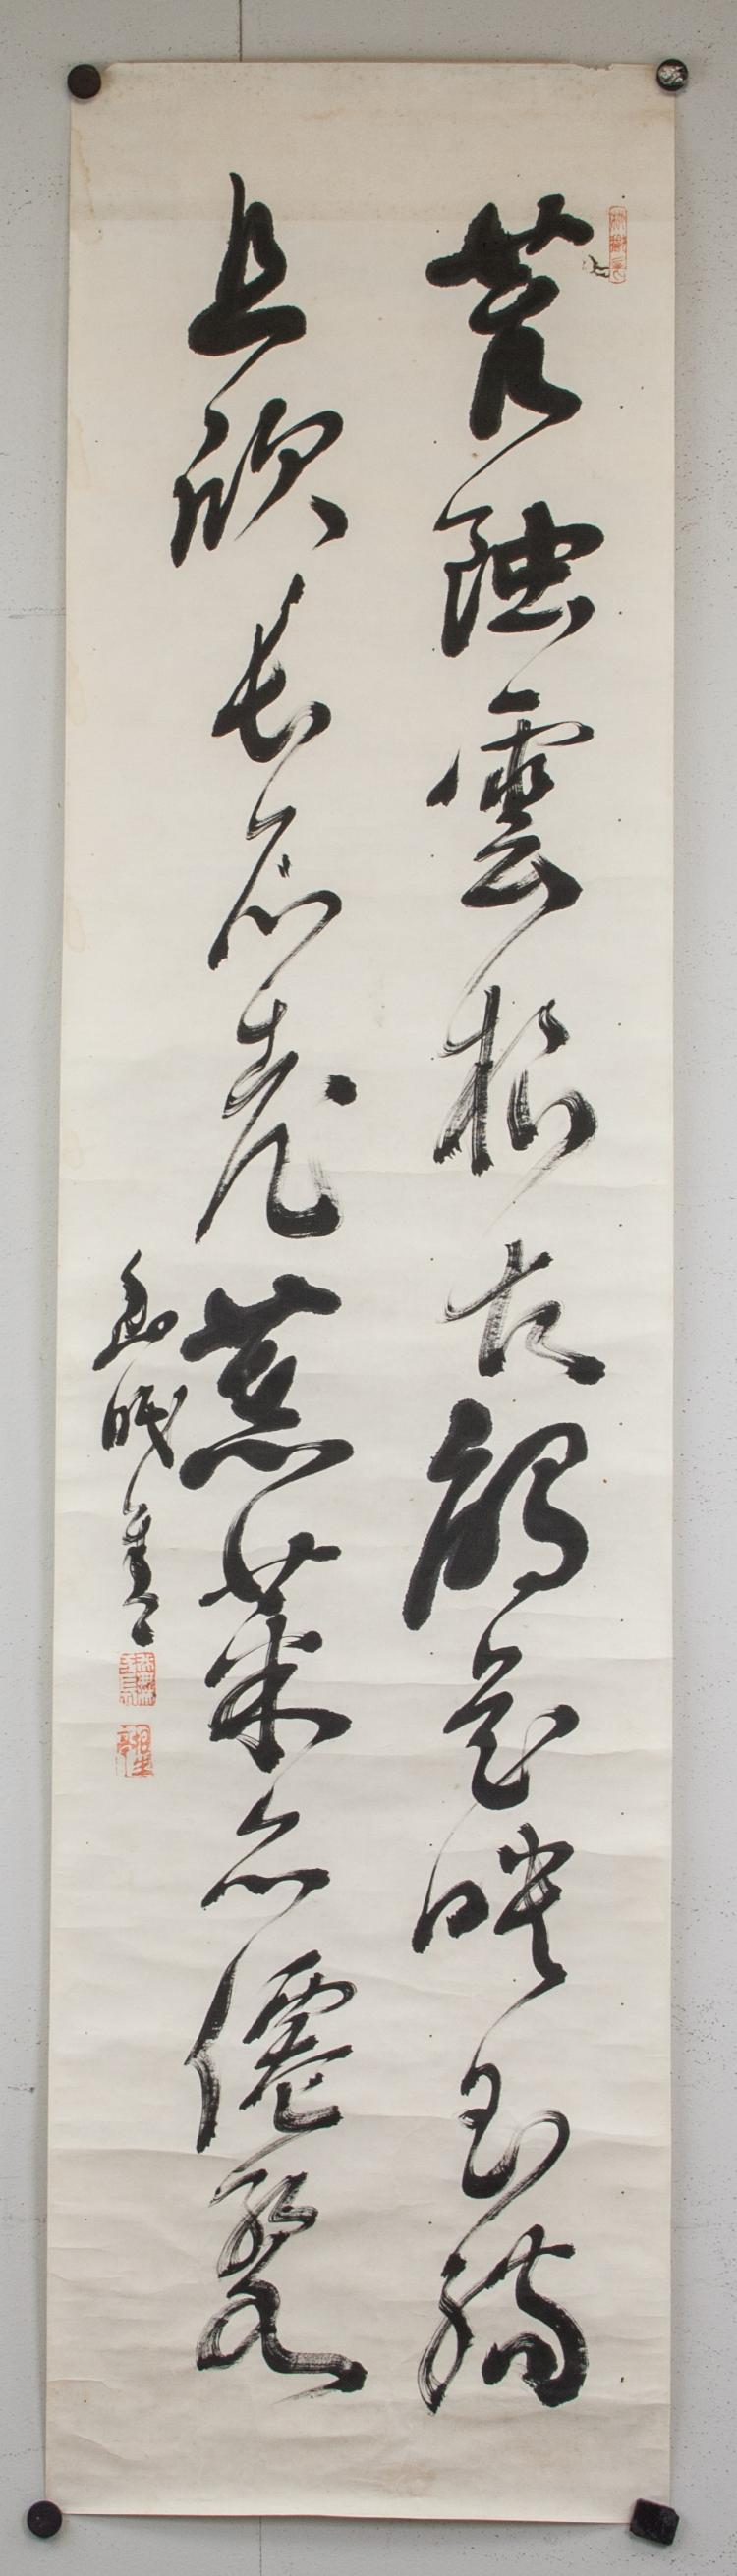 16 18 Century Chinese Calligraphy On Paper Signed